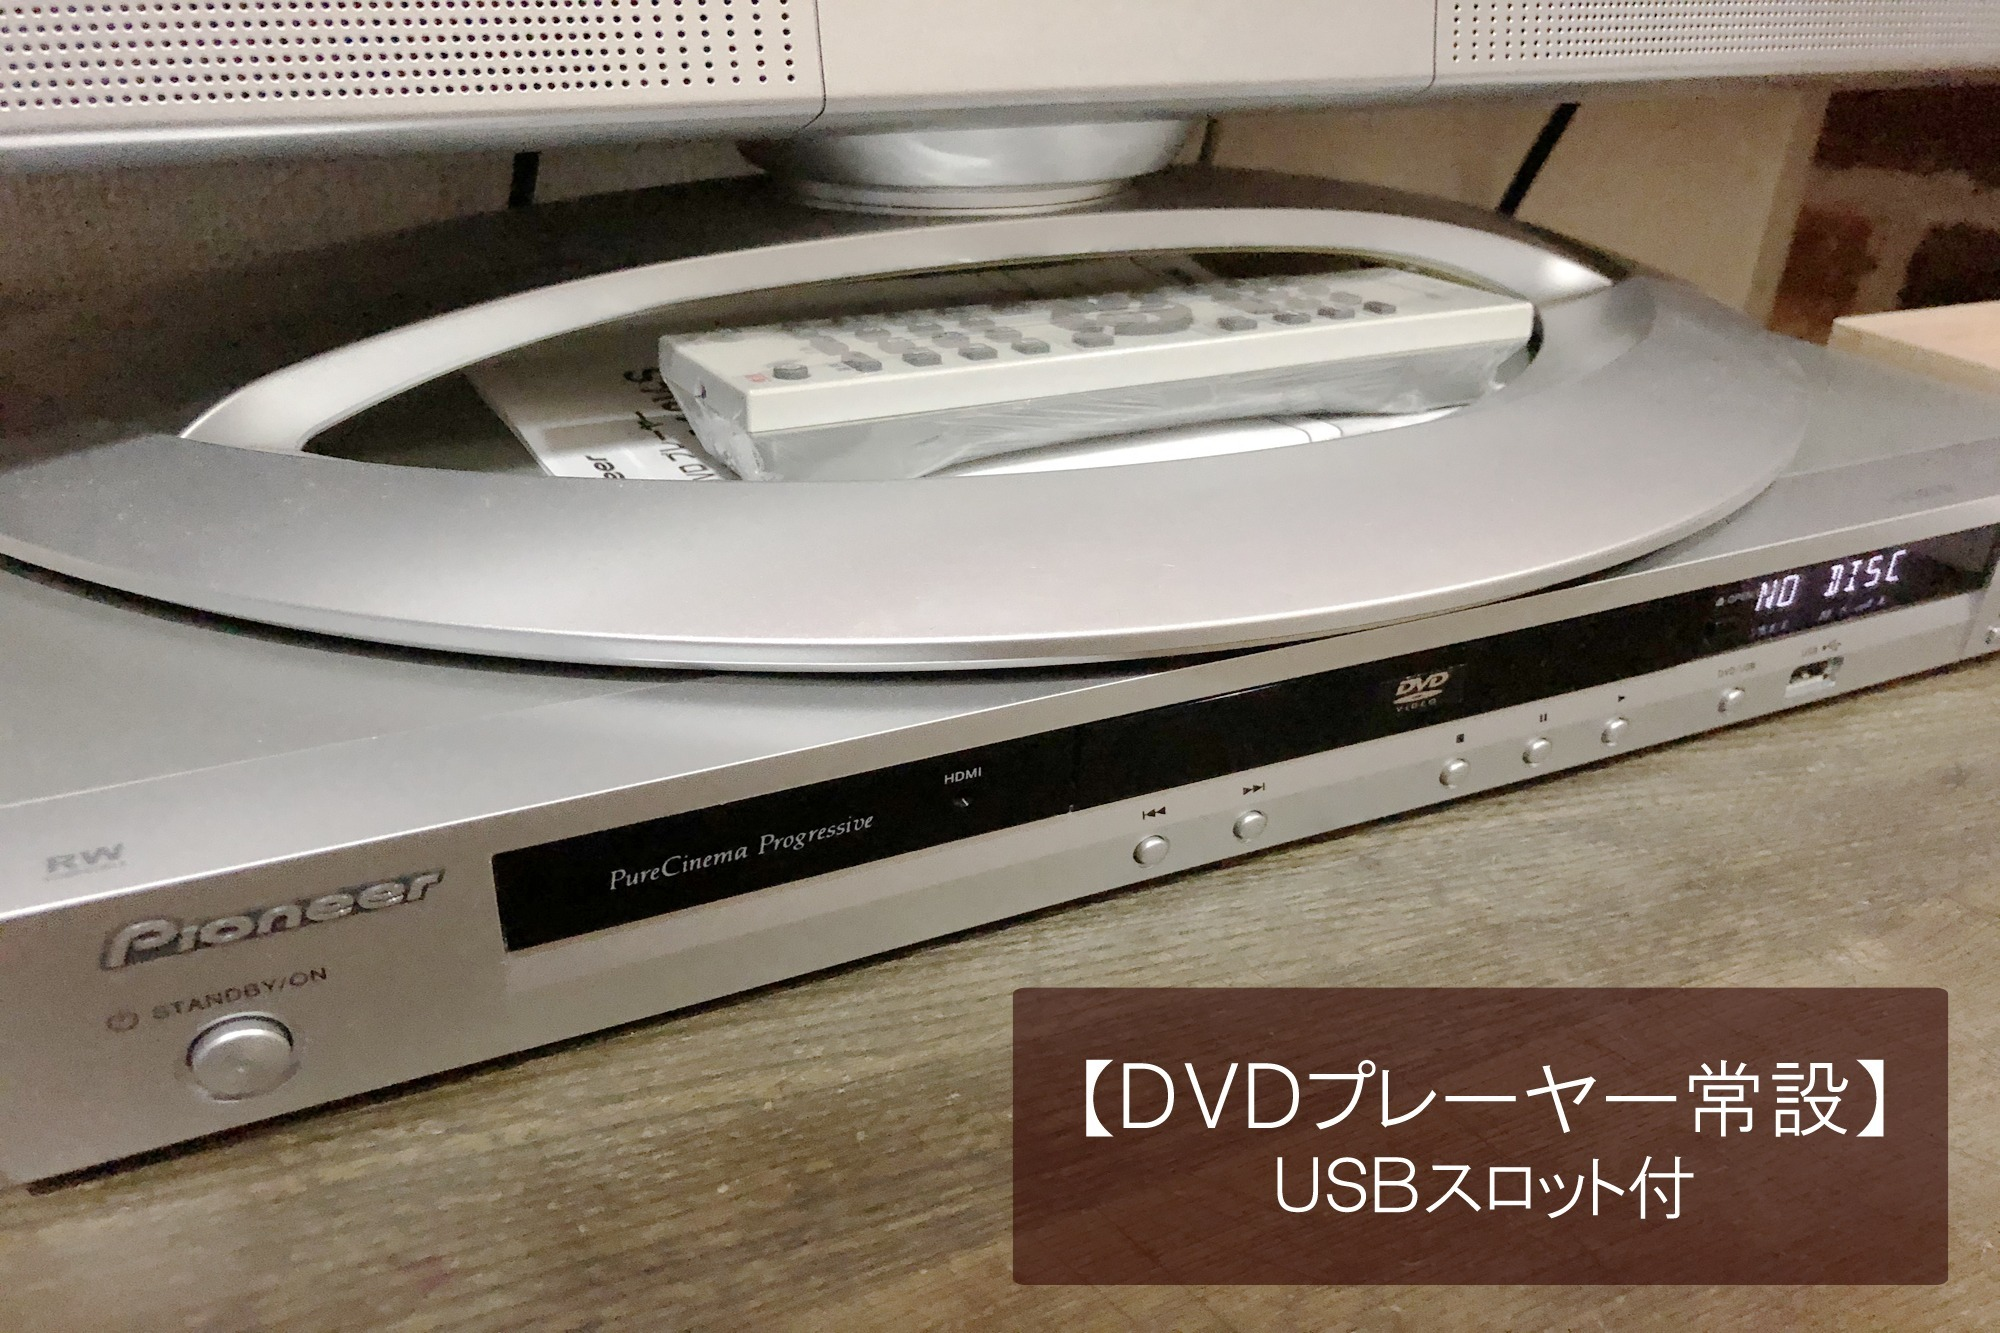 There is a DVD player with a USB slot.